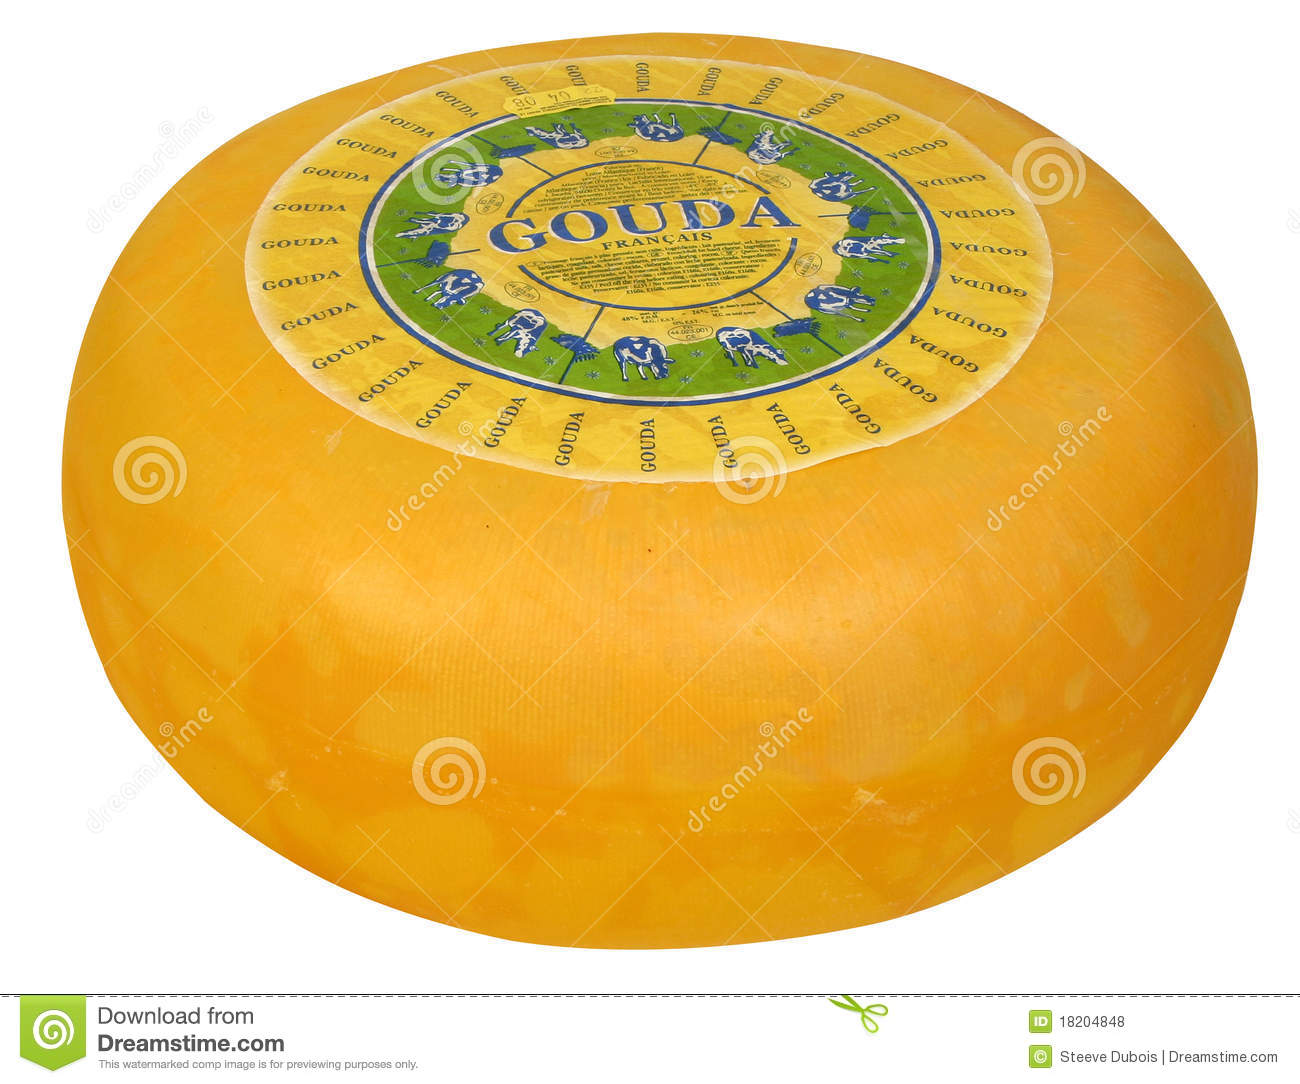 Gouda Stock Photos, Images, & Pictures.